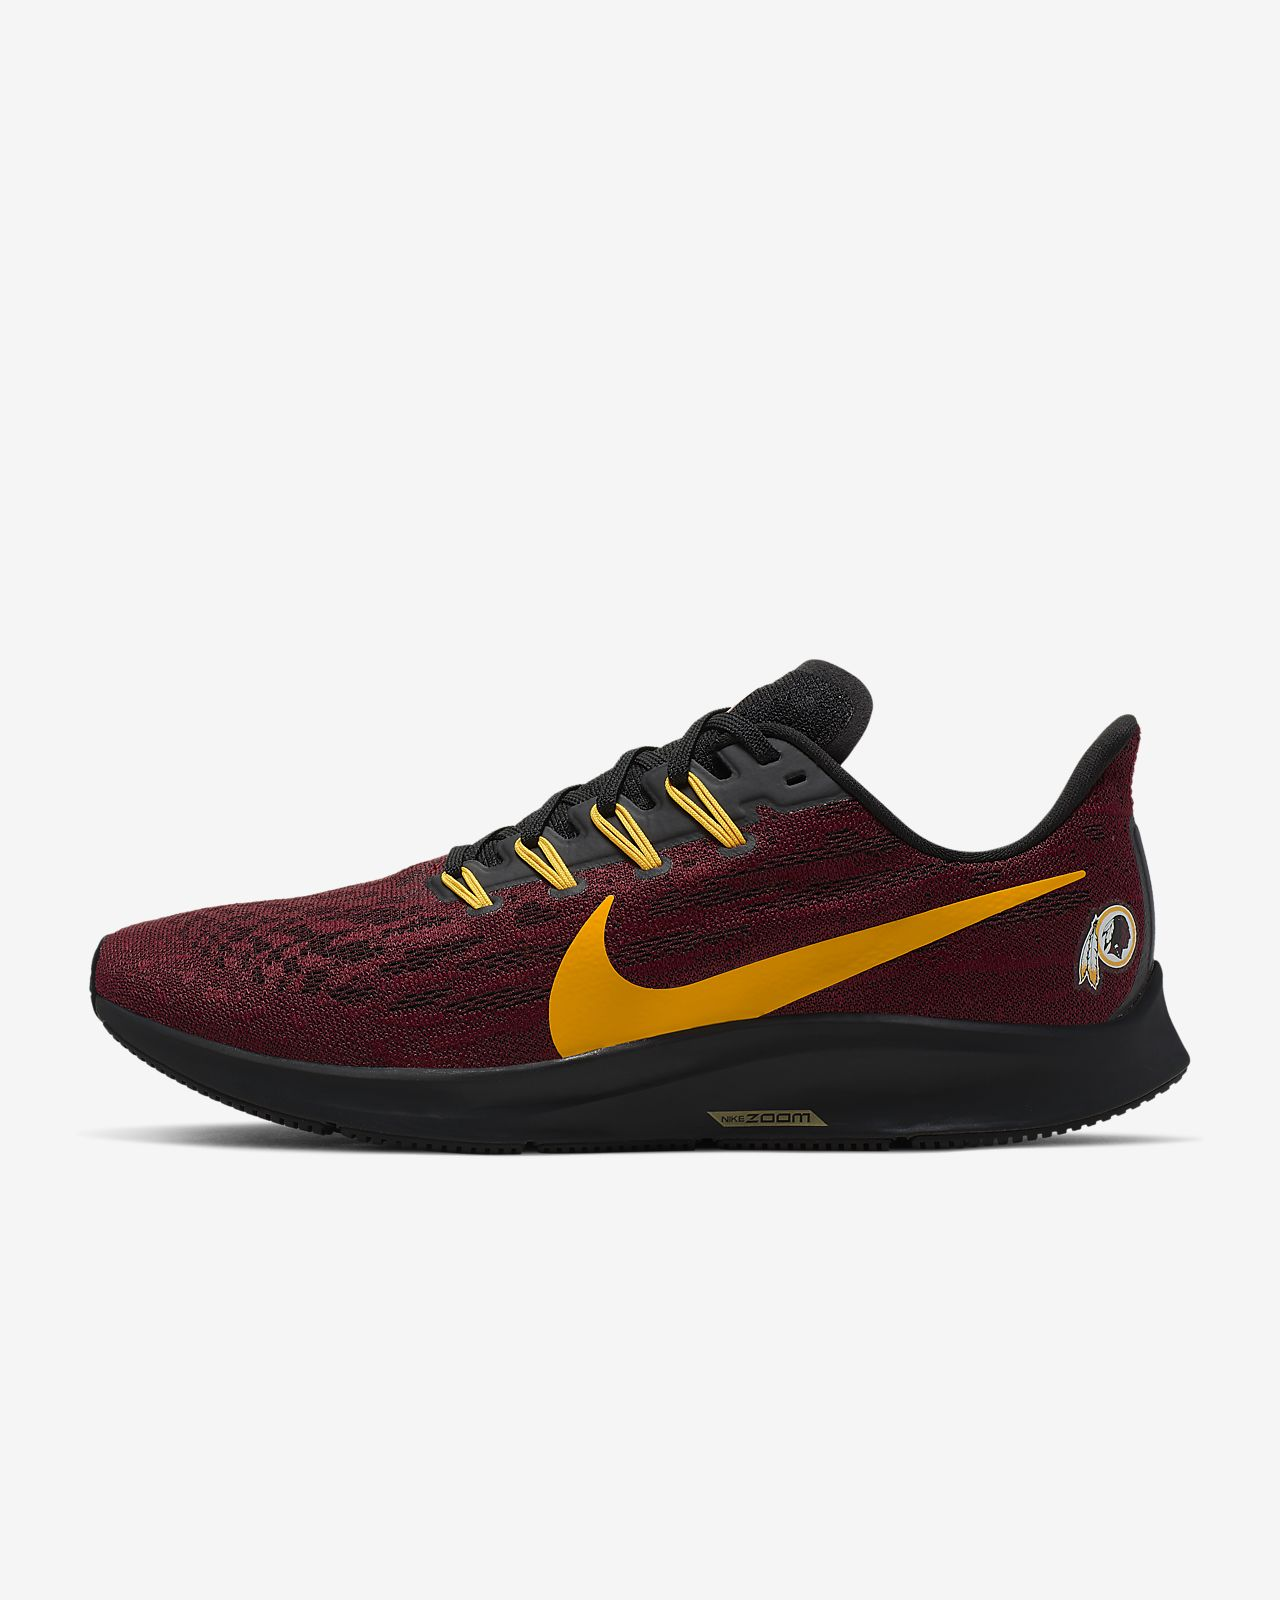 Nike Air Zoom Pegasus 36 (Redskins) Men's Running Shoe